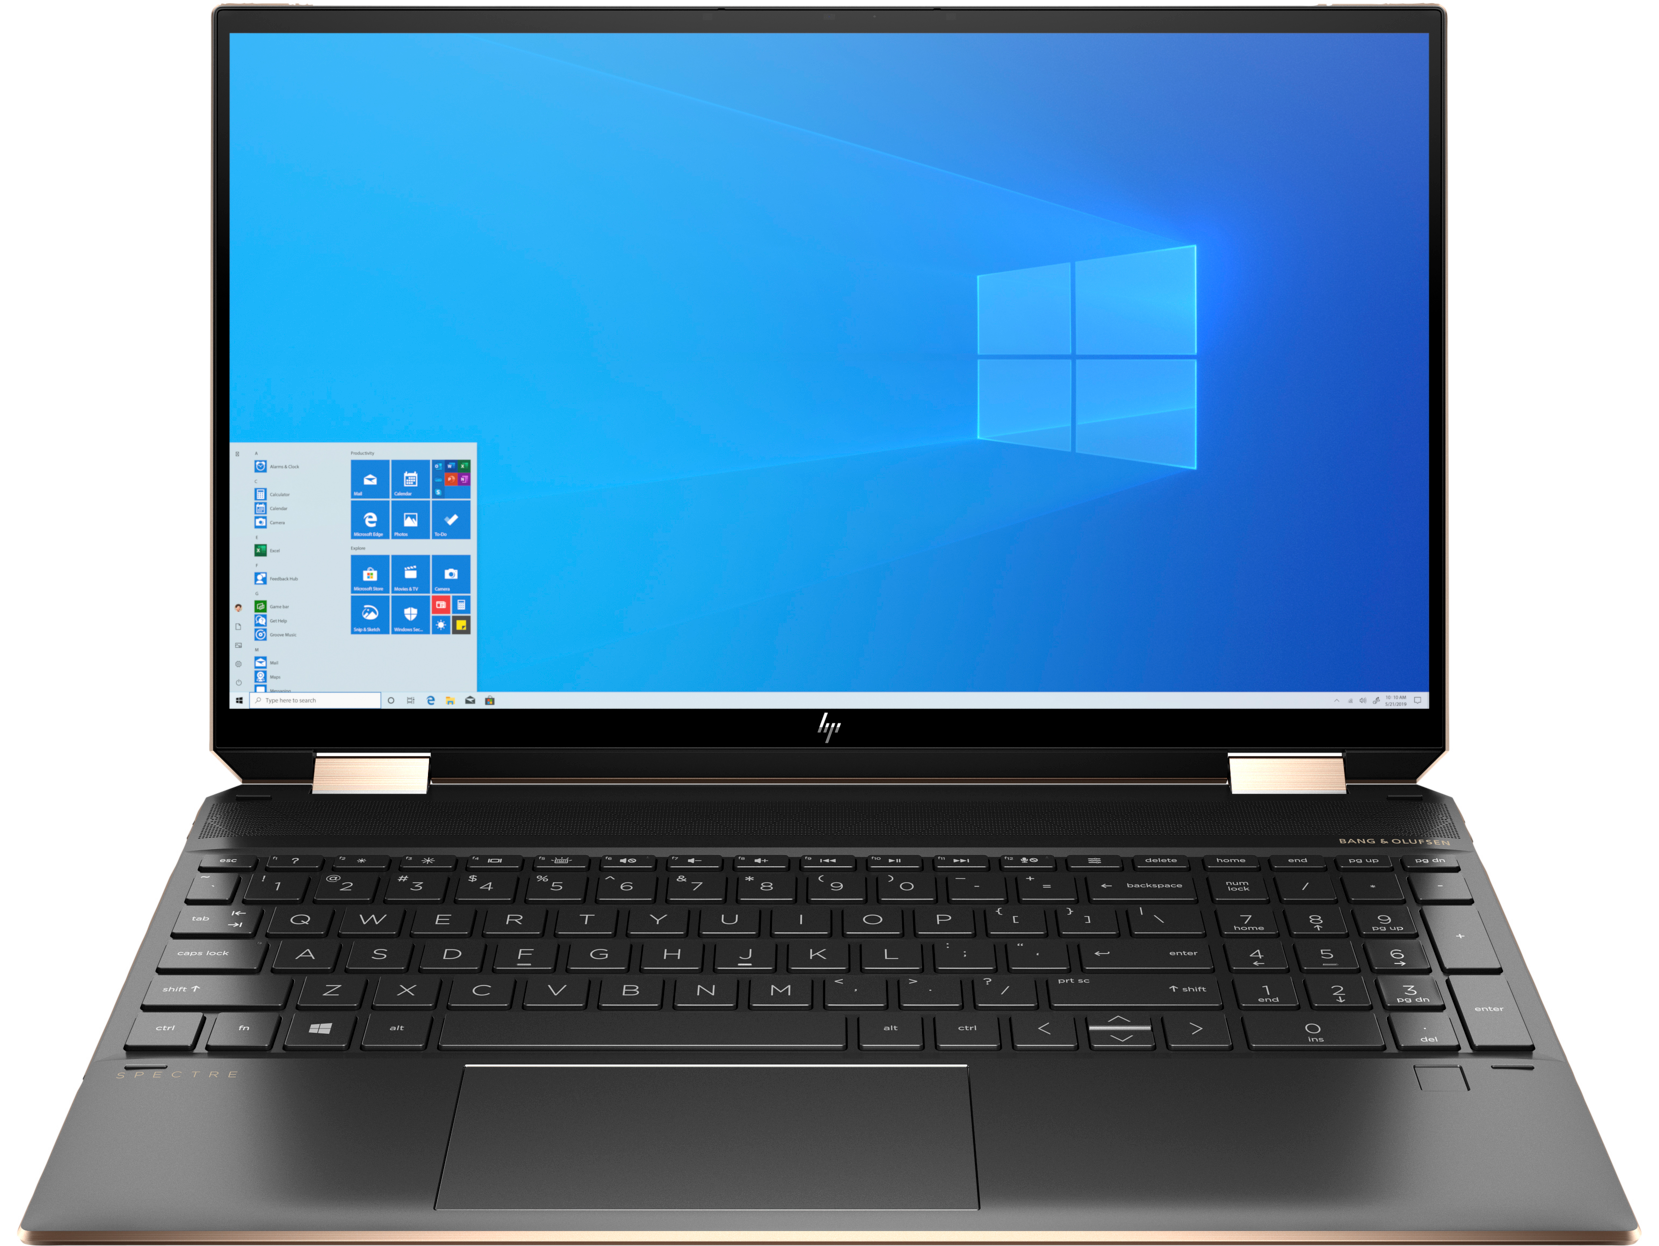 "Ноутбук HP Spectre 15-eb1004ur (2X2A8EA) 15.6""(3840x2160)IPS Cенсорный/ i7-1165G7(2.8ГГц)/ 16Гб/ 512Gb SSD/ Iris Xe Graphics/ нет DVD/ Win10 / Черный"